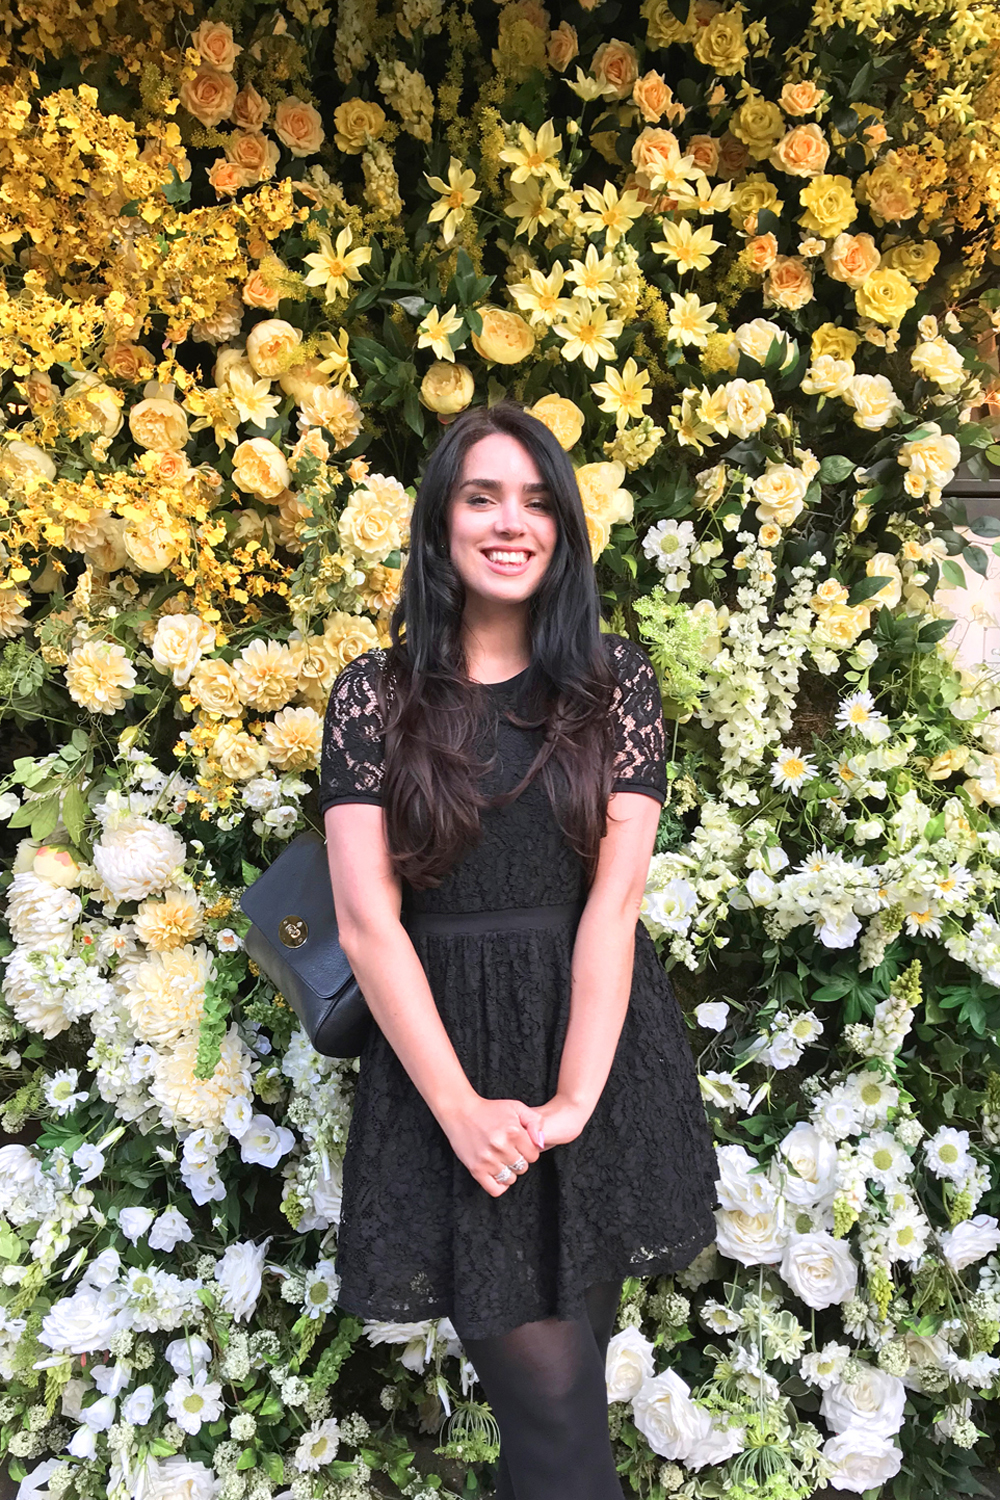 Emma Louise Layla at The Ivy Chelsea Garden during Chelsea in Bloom - London lifestyle blog